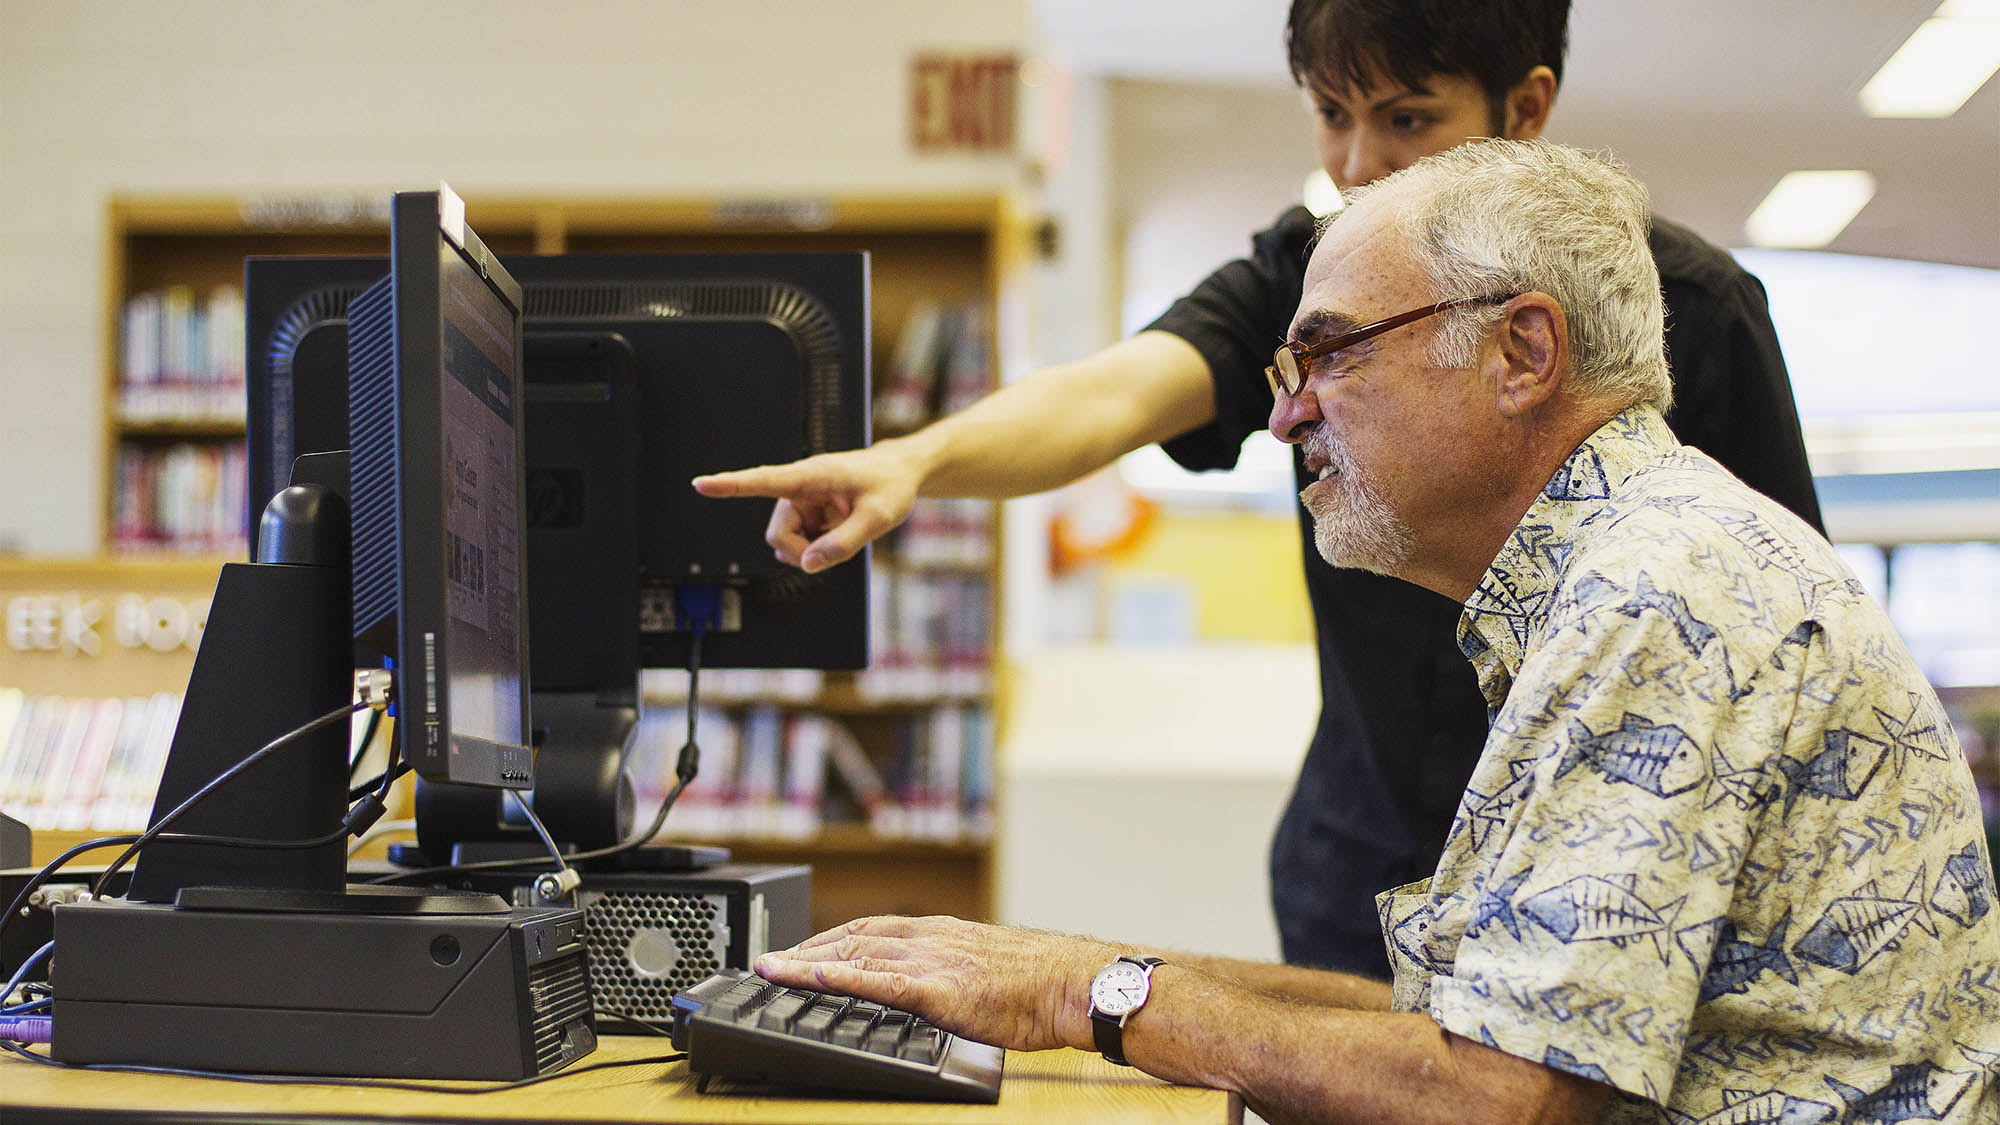 Librarian Bertrand Bobis  (L) teaches a senior citizen how to use a Facebook account during a class at a branch of the New York Public Library in New York August 13, 2012. Seniors, some in their 90s, could soon be making new friends on Facebook thanks to New York libraries offering classes to help the elderly learn, or brush up their social network skills.